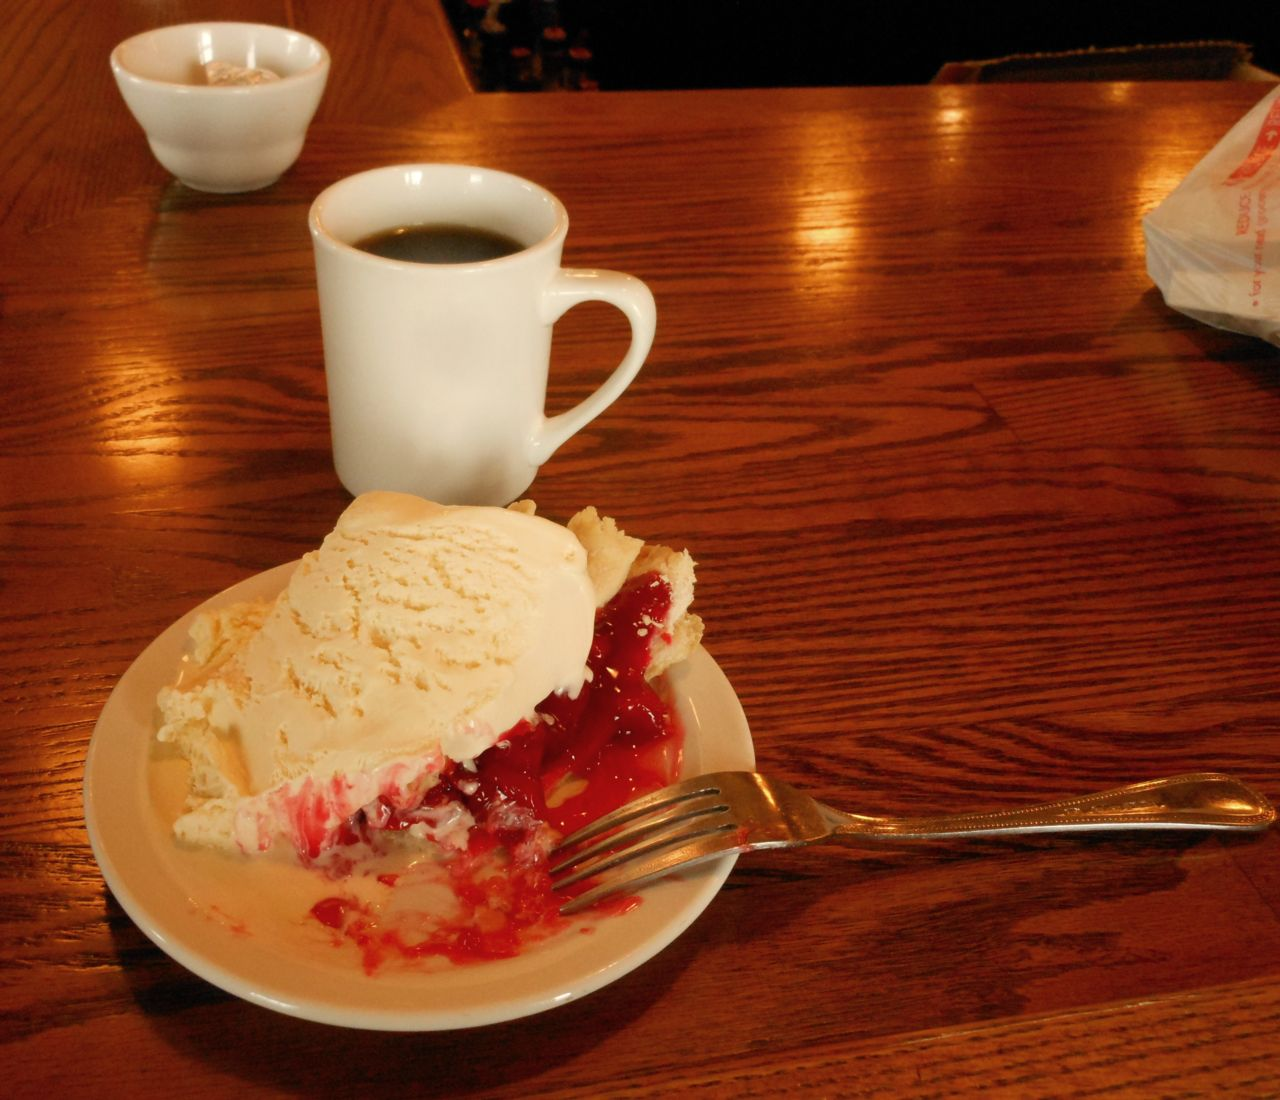 Pie and ice cream with a cup of coffee at fundraiser event